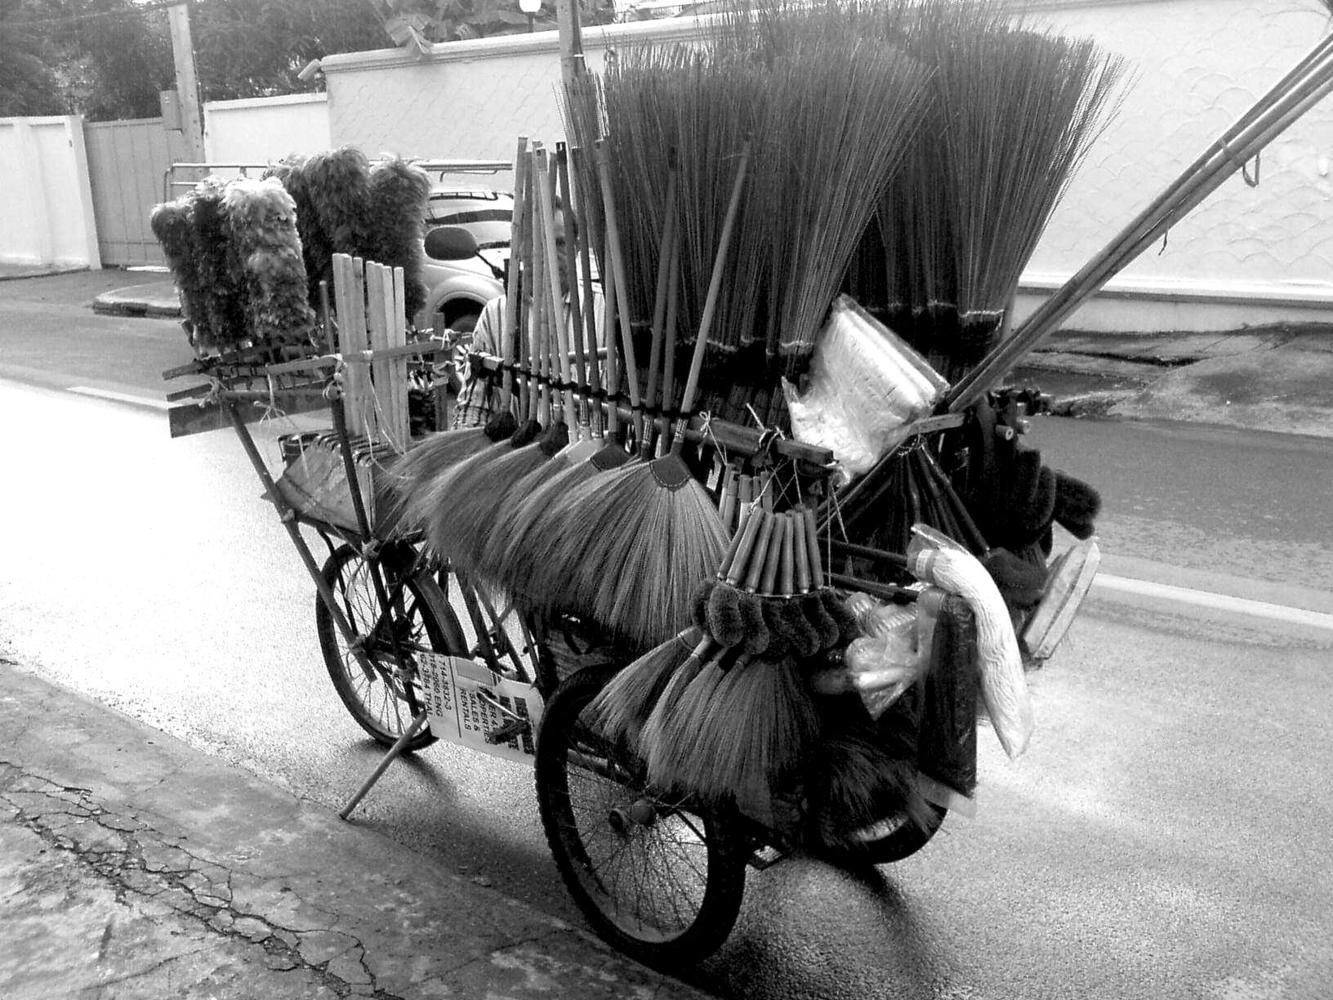 A bicycle loaded up with brooms, mops, brushes and a variety of cleaning items for sale on the streets of Thailand. Photo taken by Jett Jett Pisate Virangkabutra